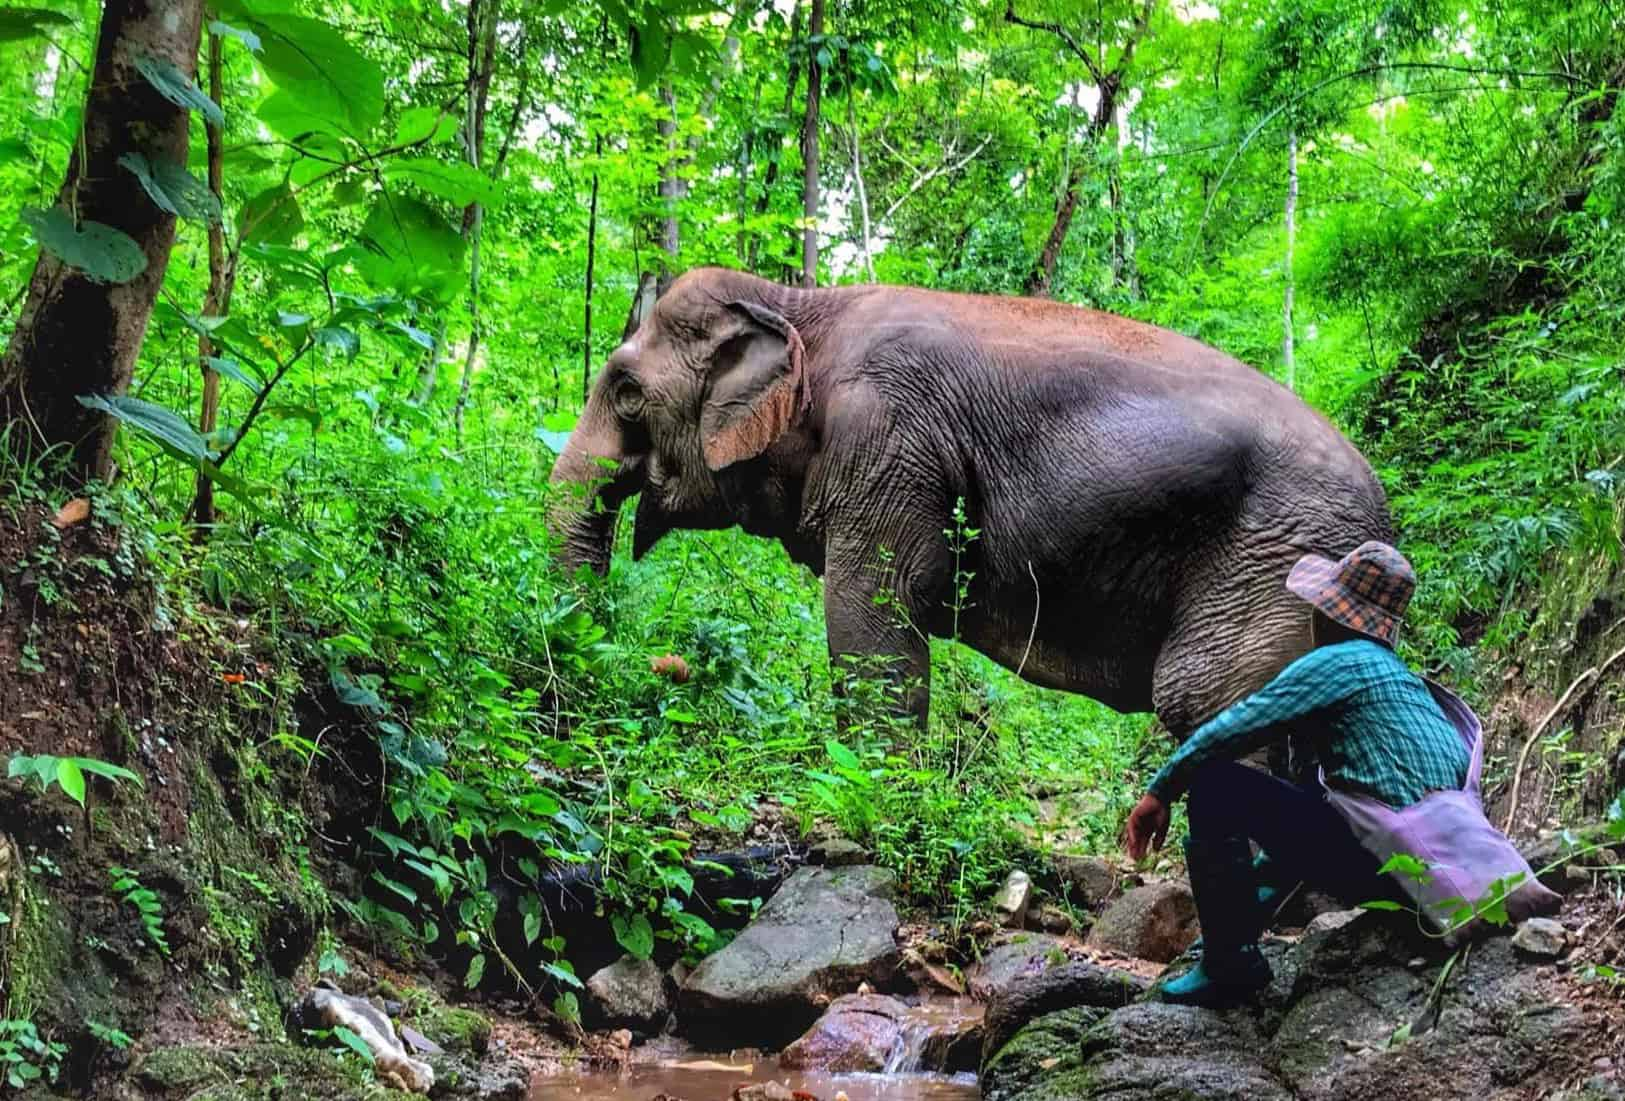 Observing elephants in the forest at BEES Elephant Sanctuary.